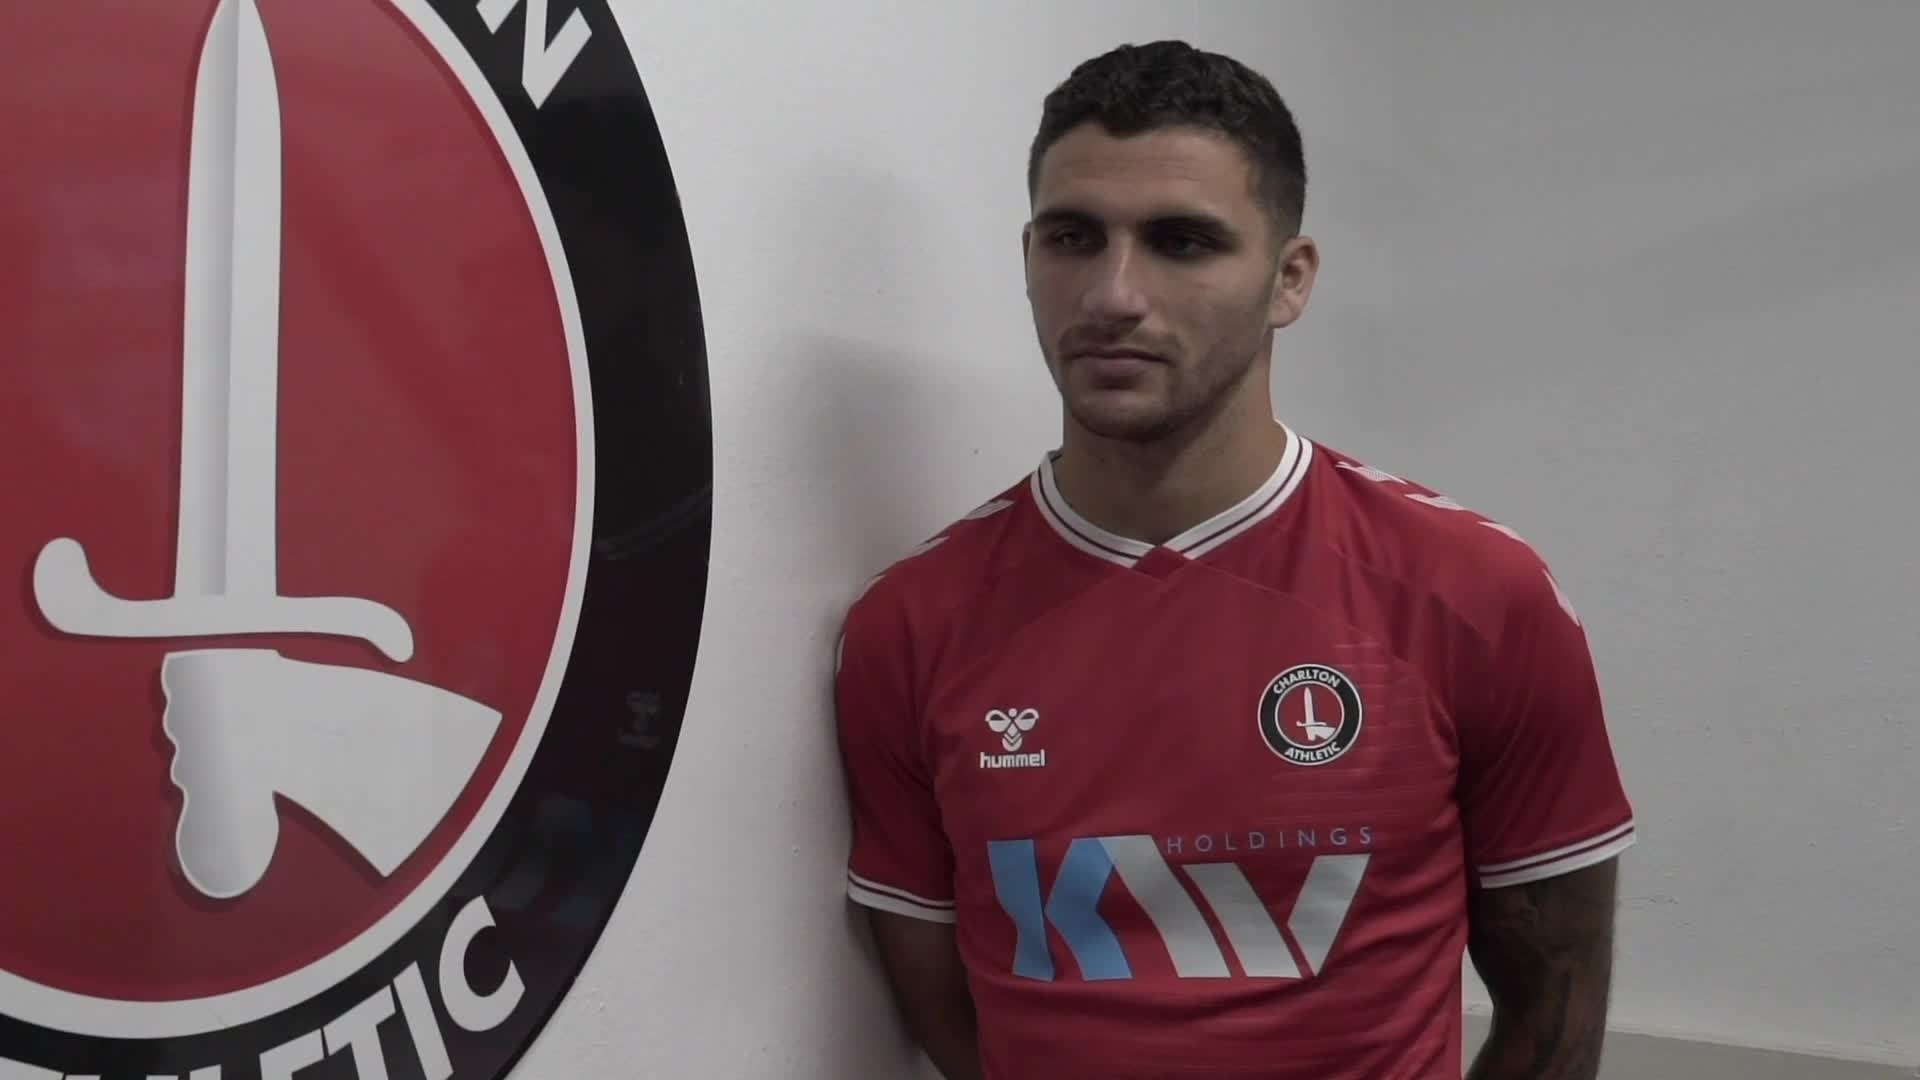 Ryan Inniss' first interview as a Charlton player (October 2020)